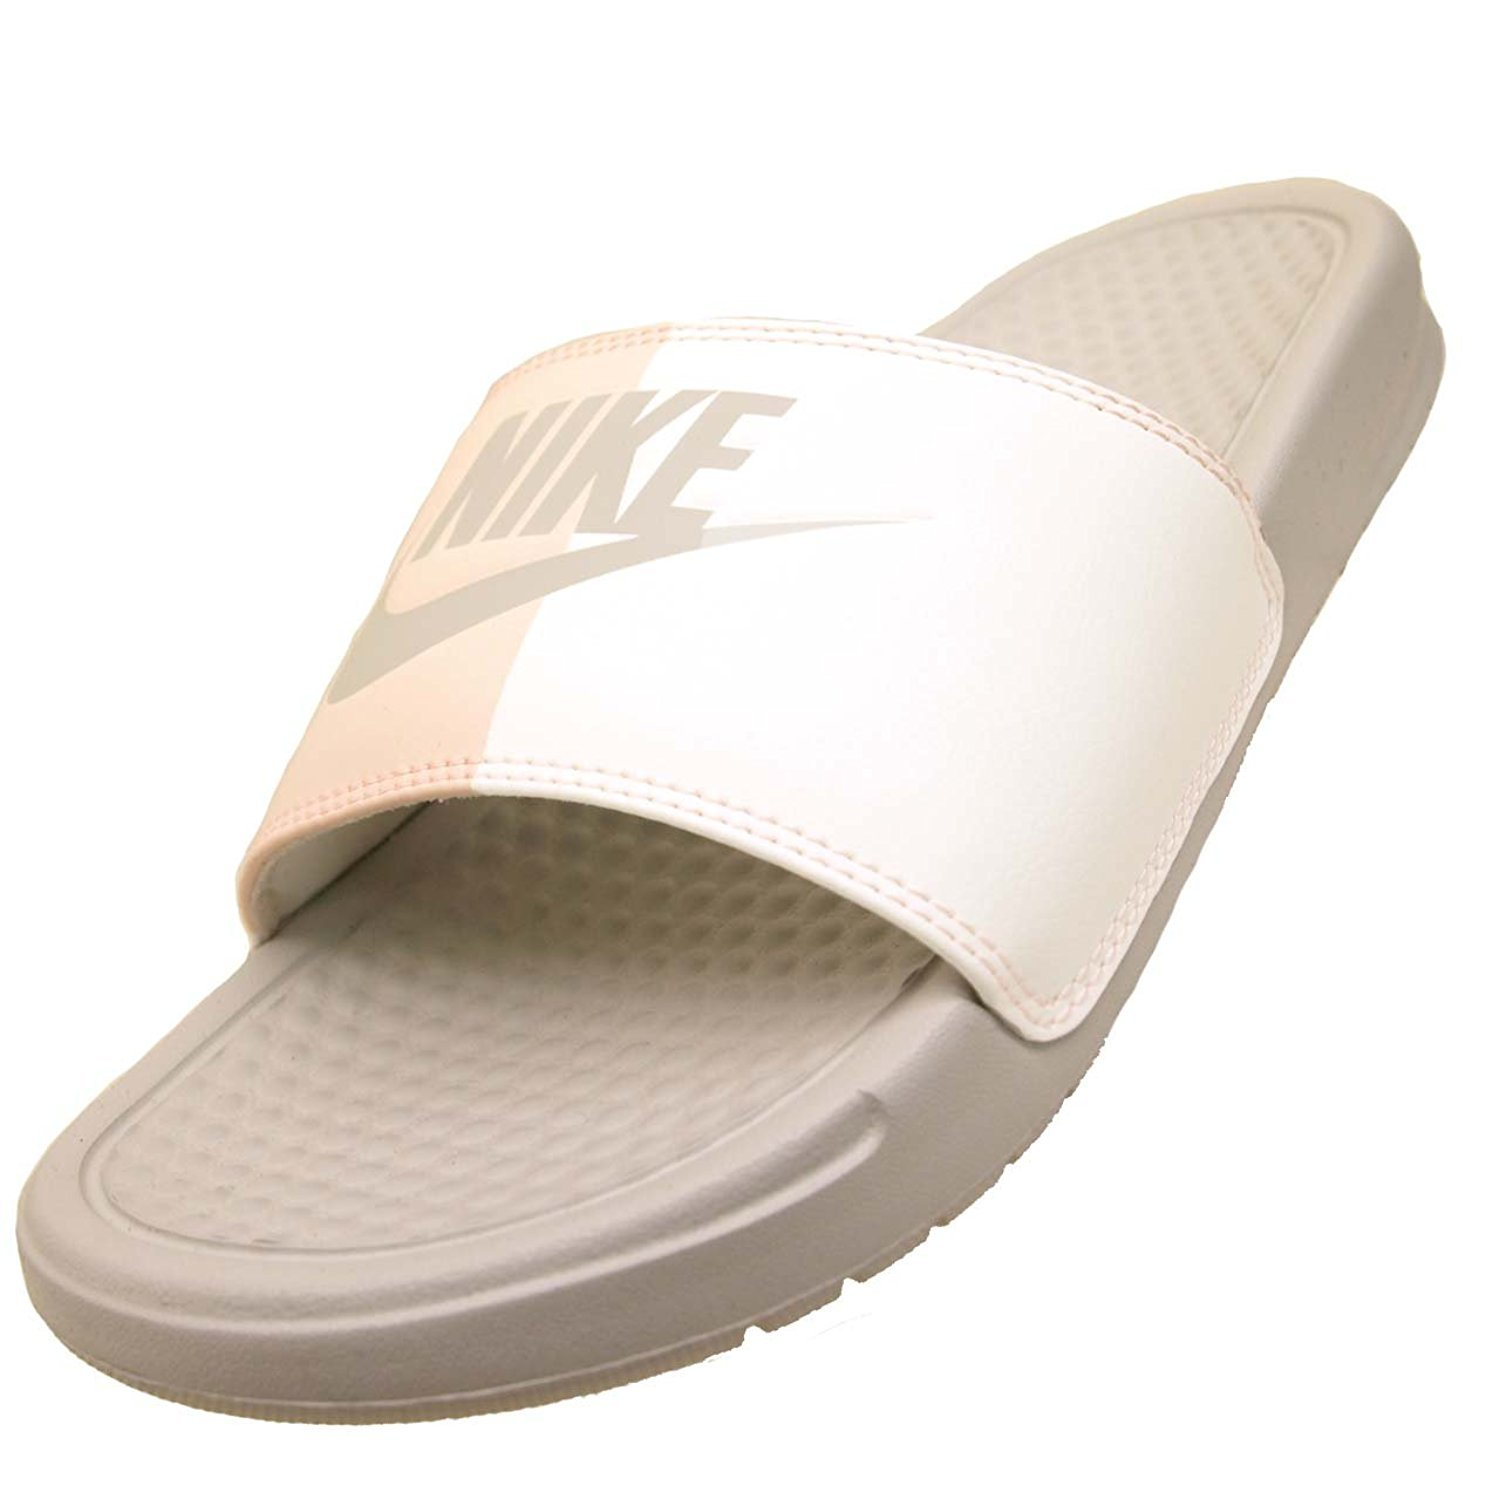 50499a1f1 Galleon - Nike Women s Benassi JDI Sandal 343881 005 (Light Bone Sai ...